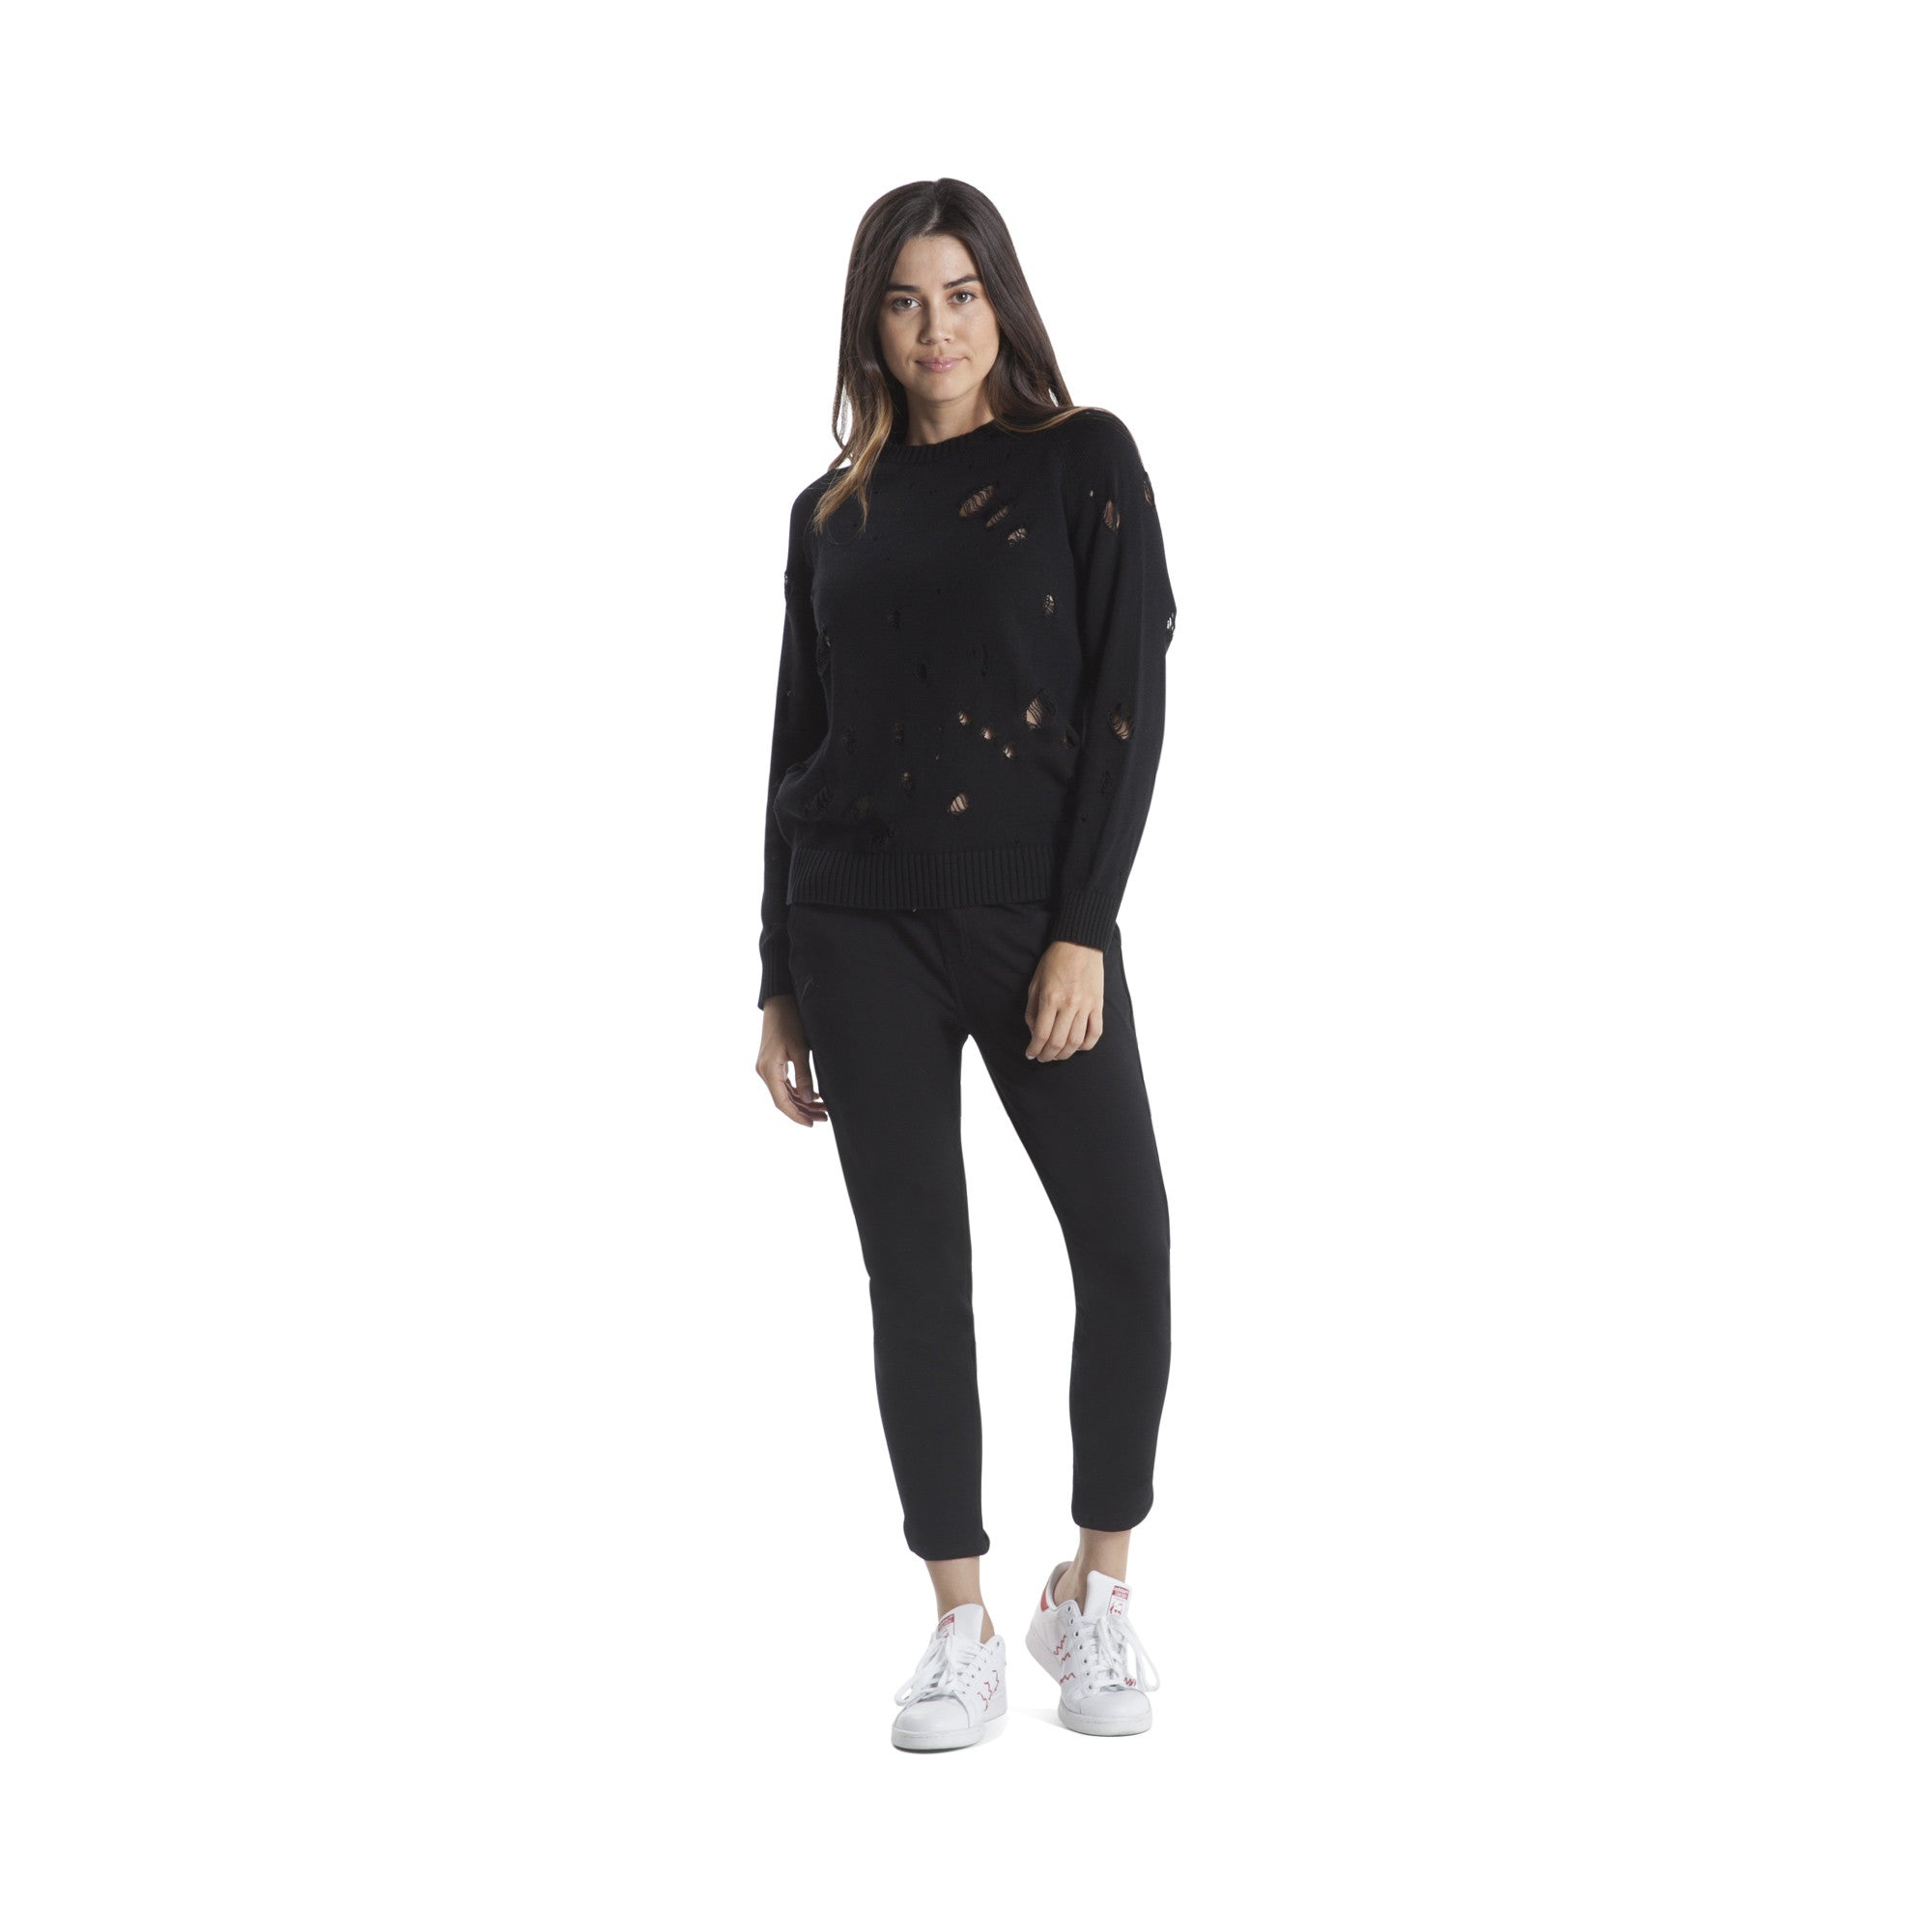 Vida - Sweater - Black